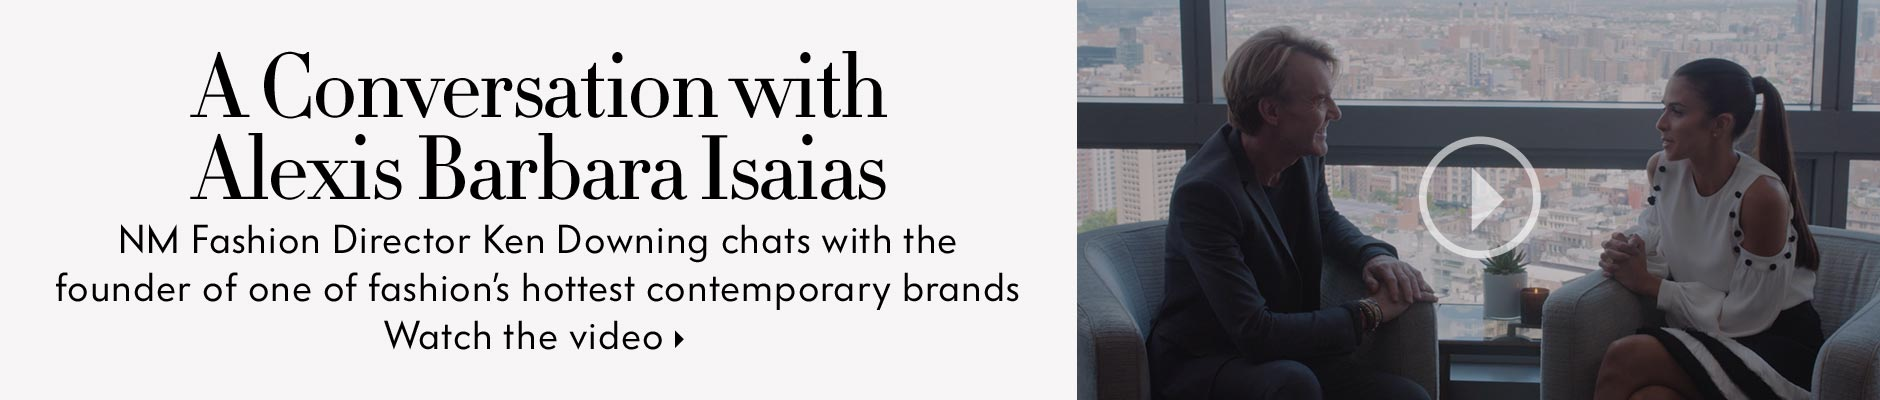 A Conversation with Alexis Barbara Isaias: NM Fashion Director Ken Downing chats with the founder of one of fashion's hottest contemporary brands - Watch the video